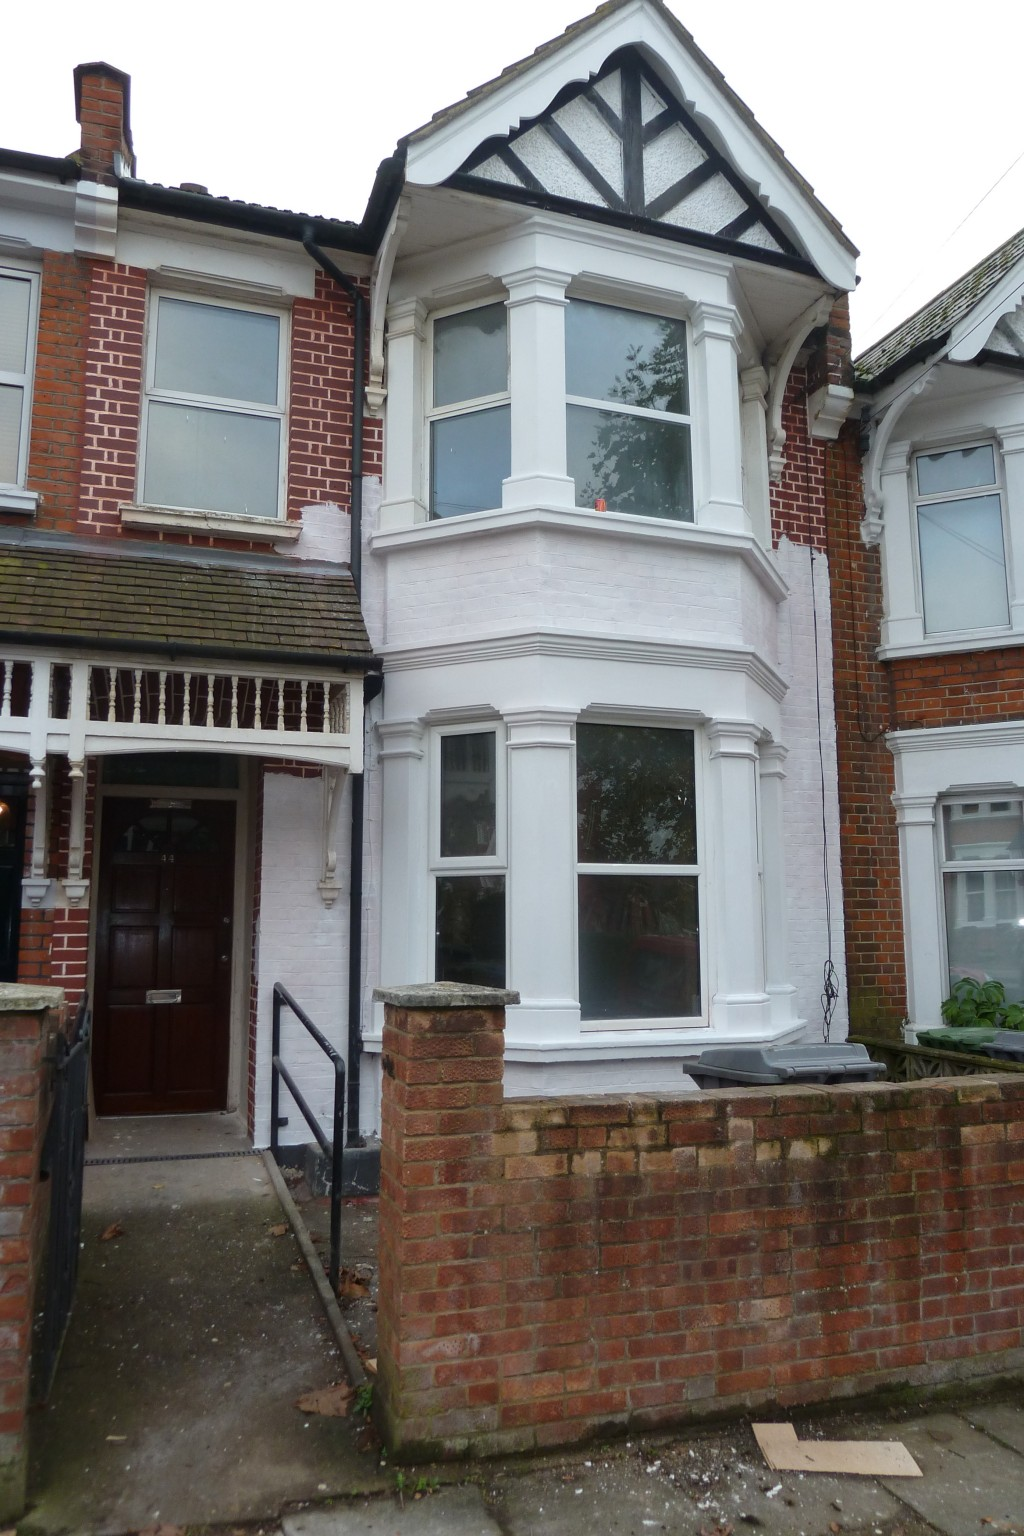 1 bedroom shared house To Let in London - Mid Terraced House